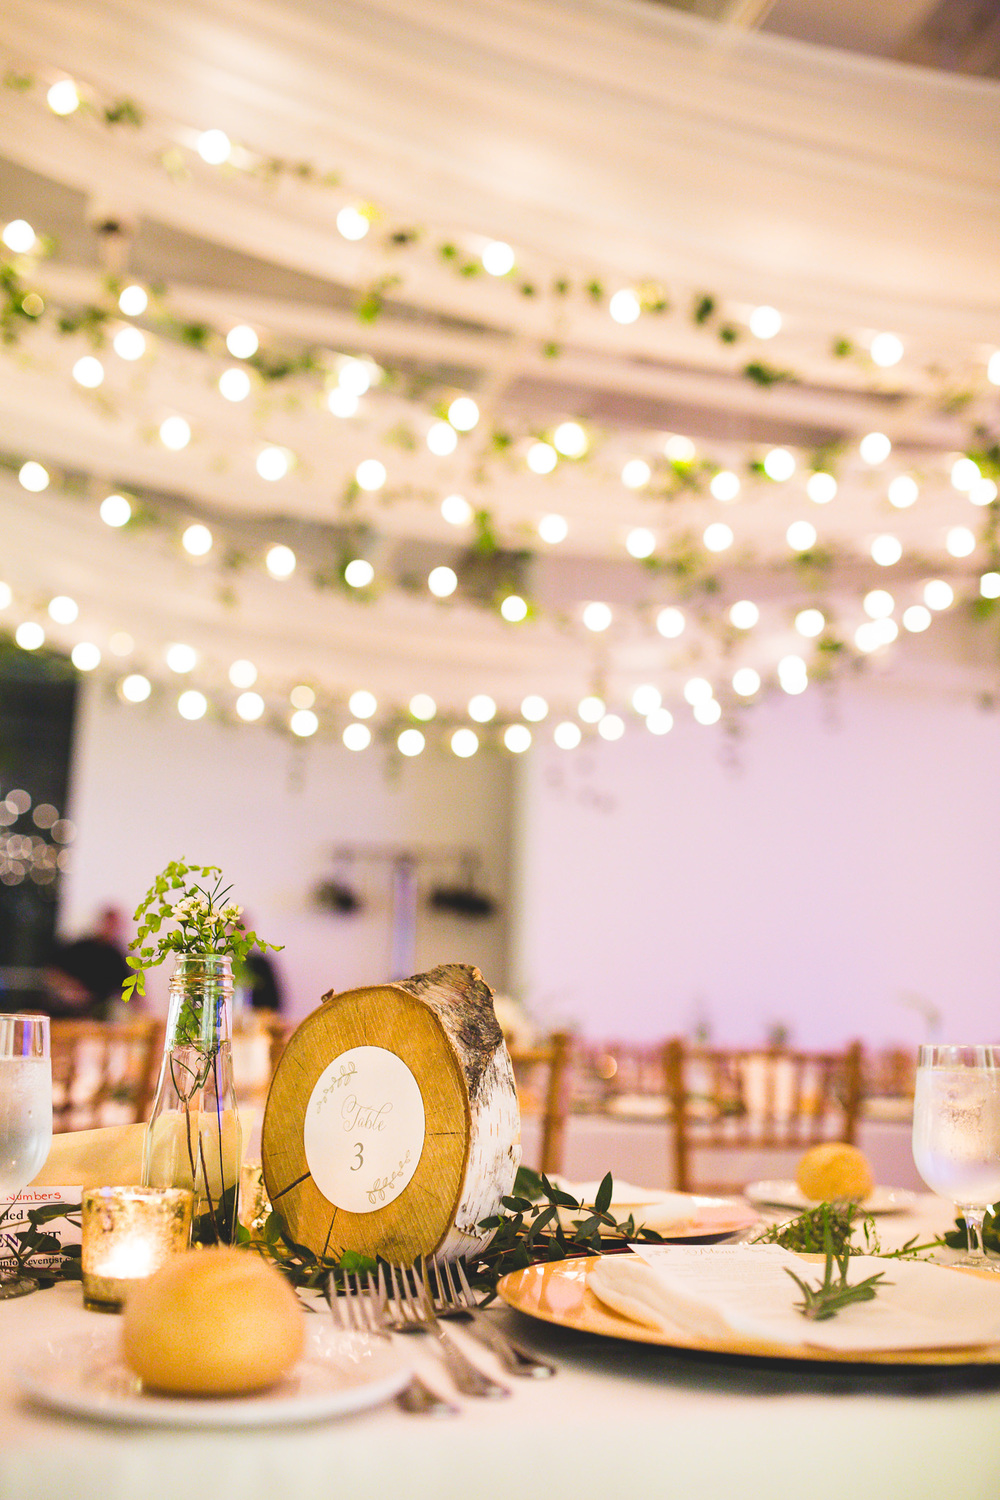 hipster-wedding-table.jpg